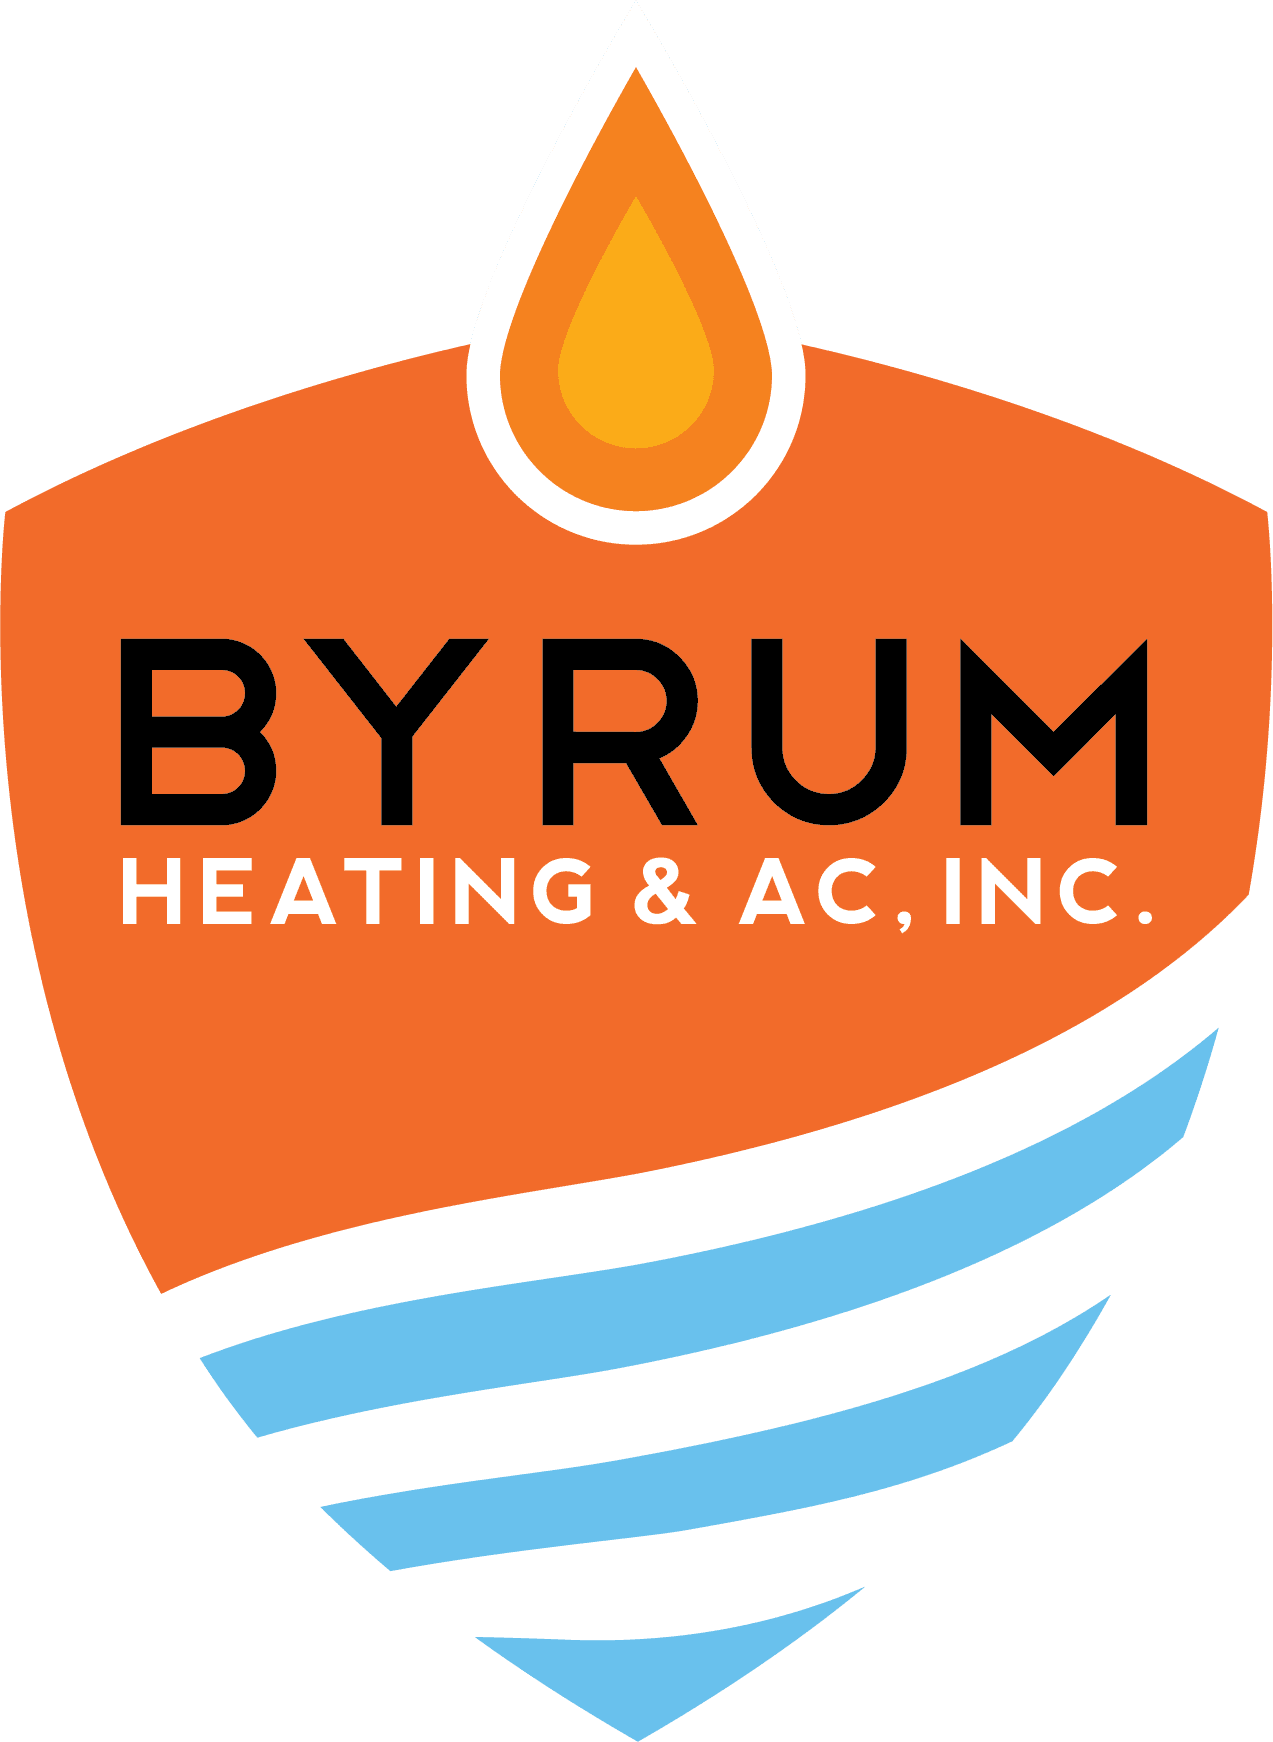 Air Conditioning Services Monroe NC| Byrum Heating & A/C, Inc